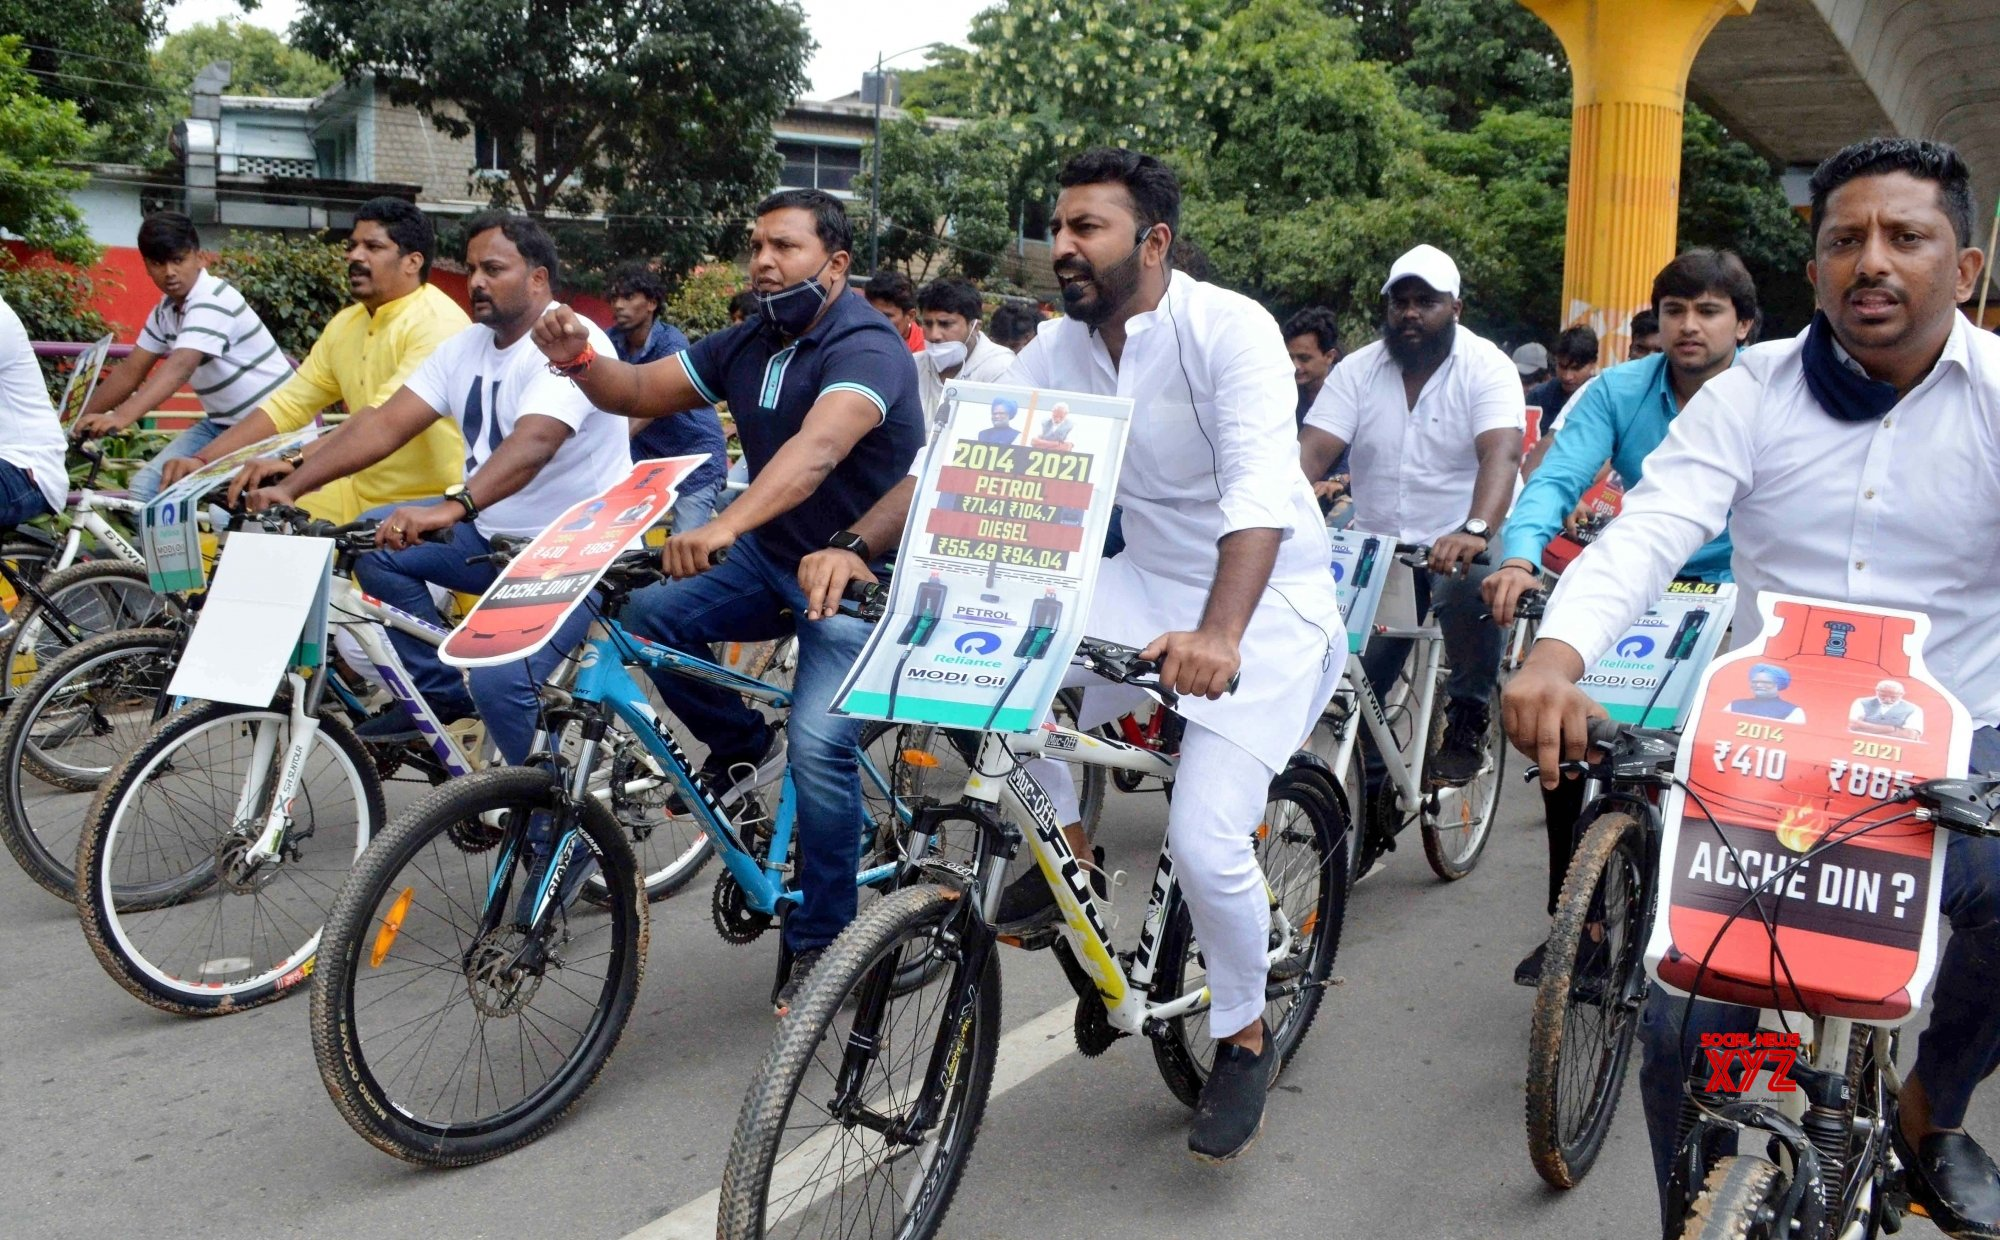 Members of KPCC Youth Congress led by National Youth Congress President BV Srinivas take part in a cycle rally to protest against hike in Fuel and LPG price #Gallery